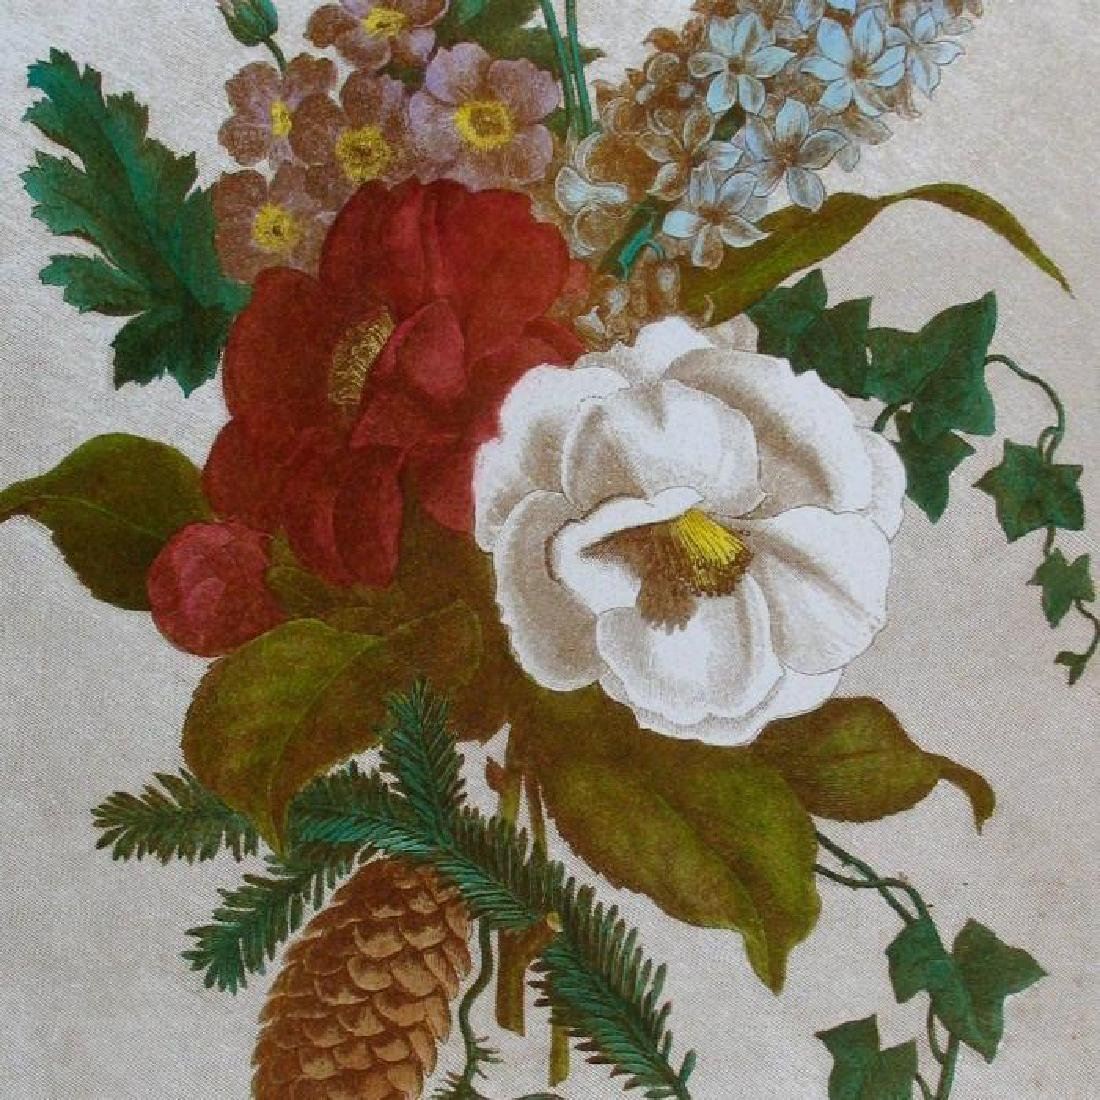 Floral Hand Colored Original Etching Signed & Numbered